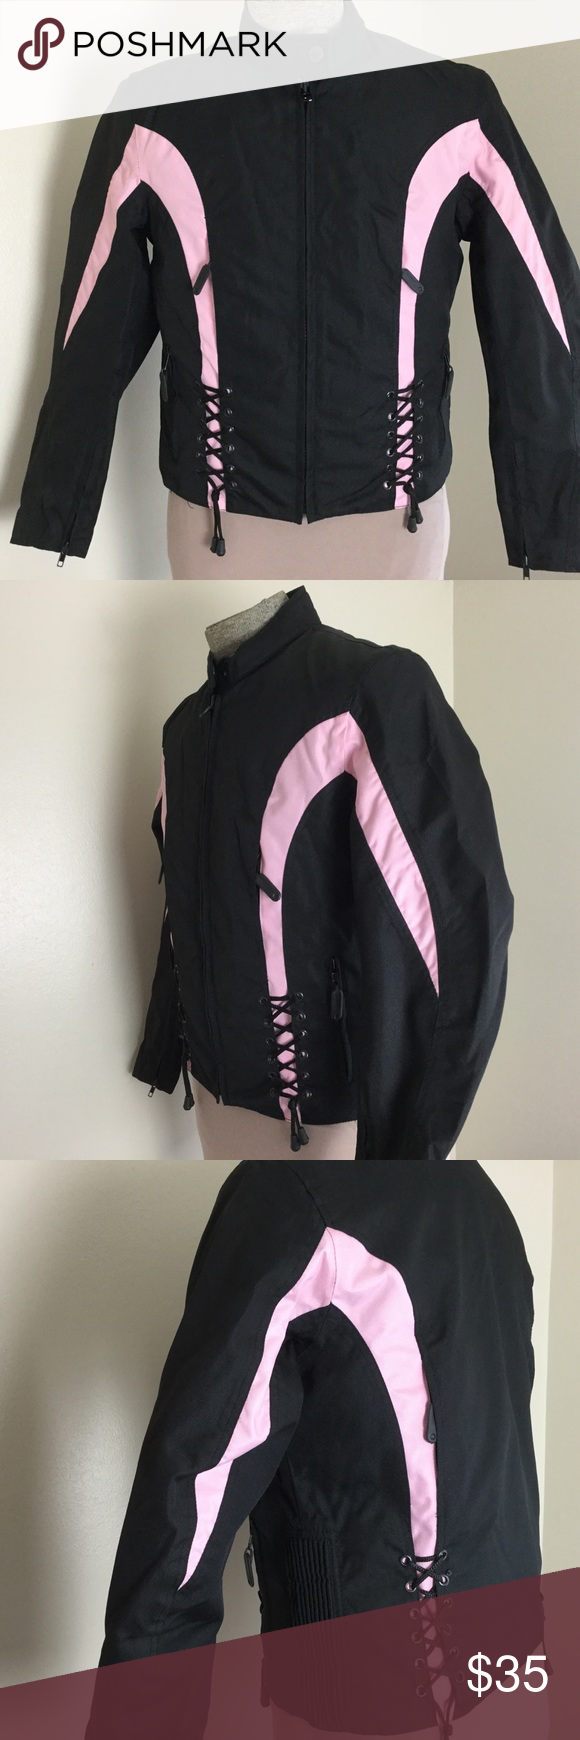 Motorcycle Jacket Waterproof Zip Out Lining Motorcyle Jacket Jackets Clothes Design